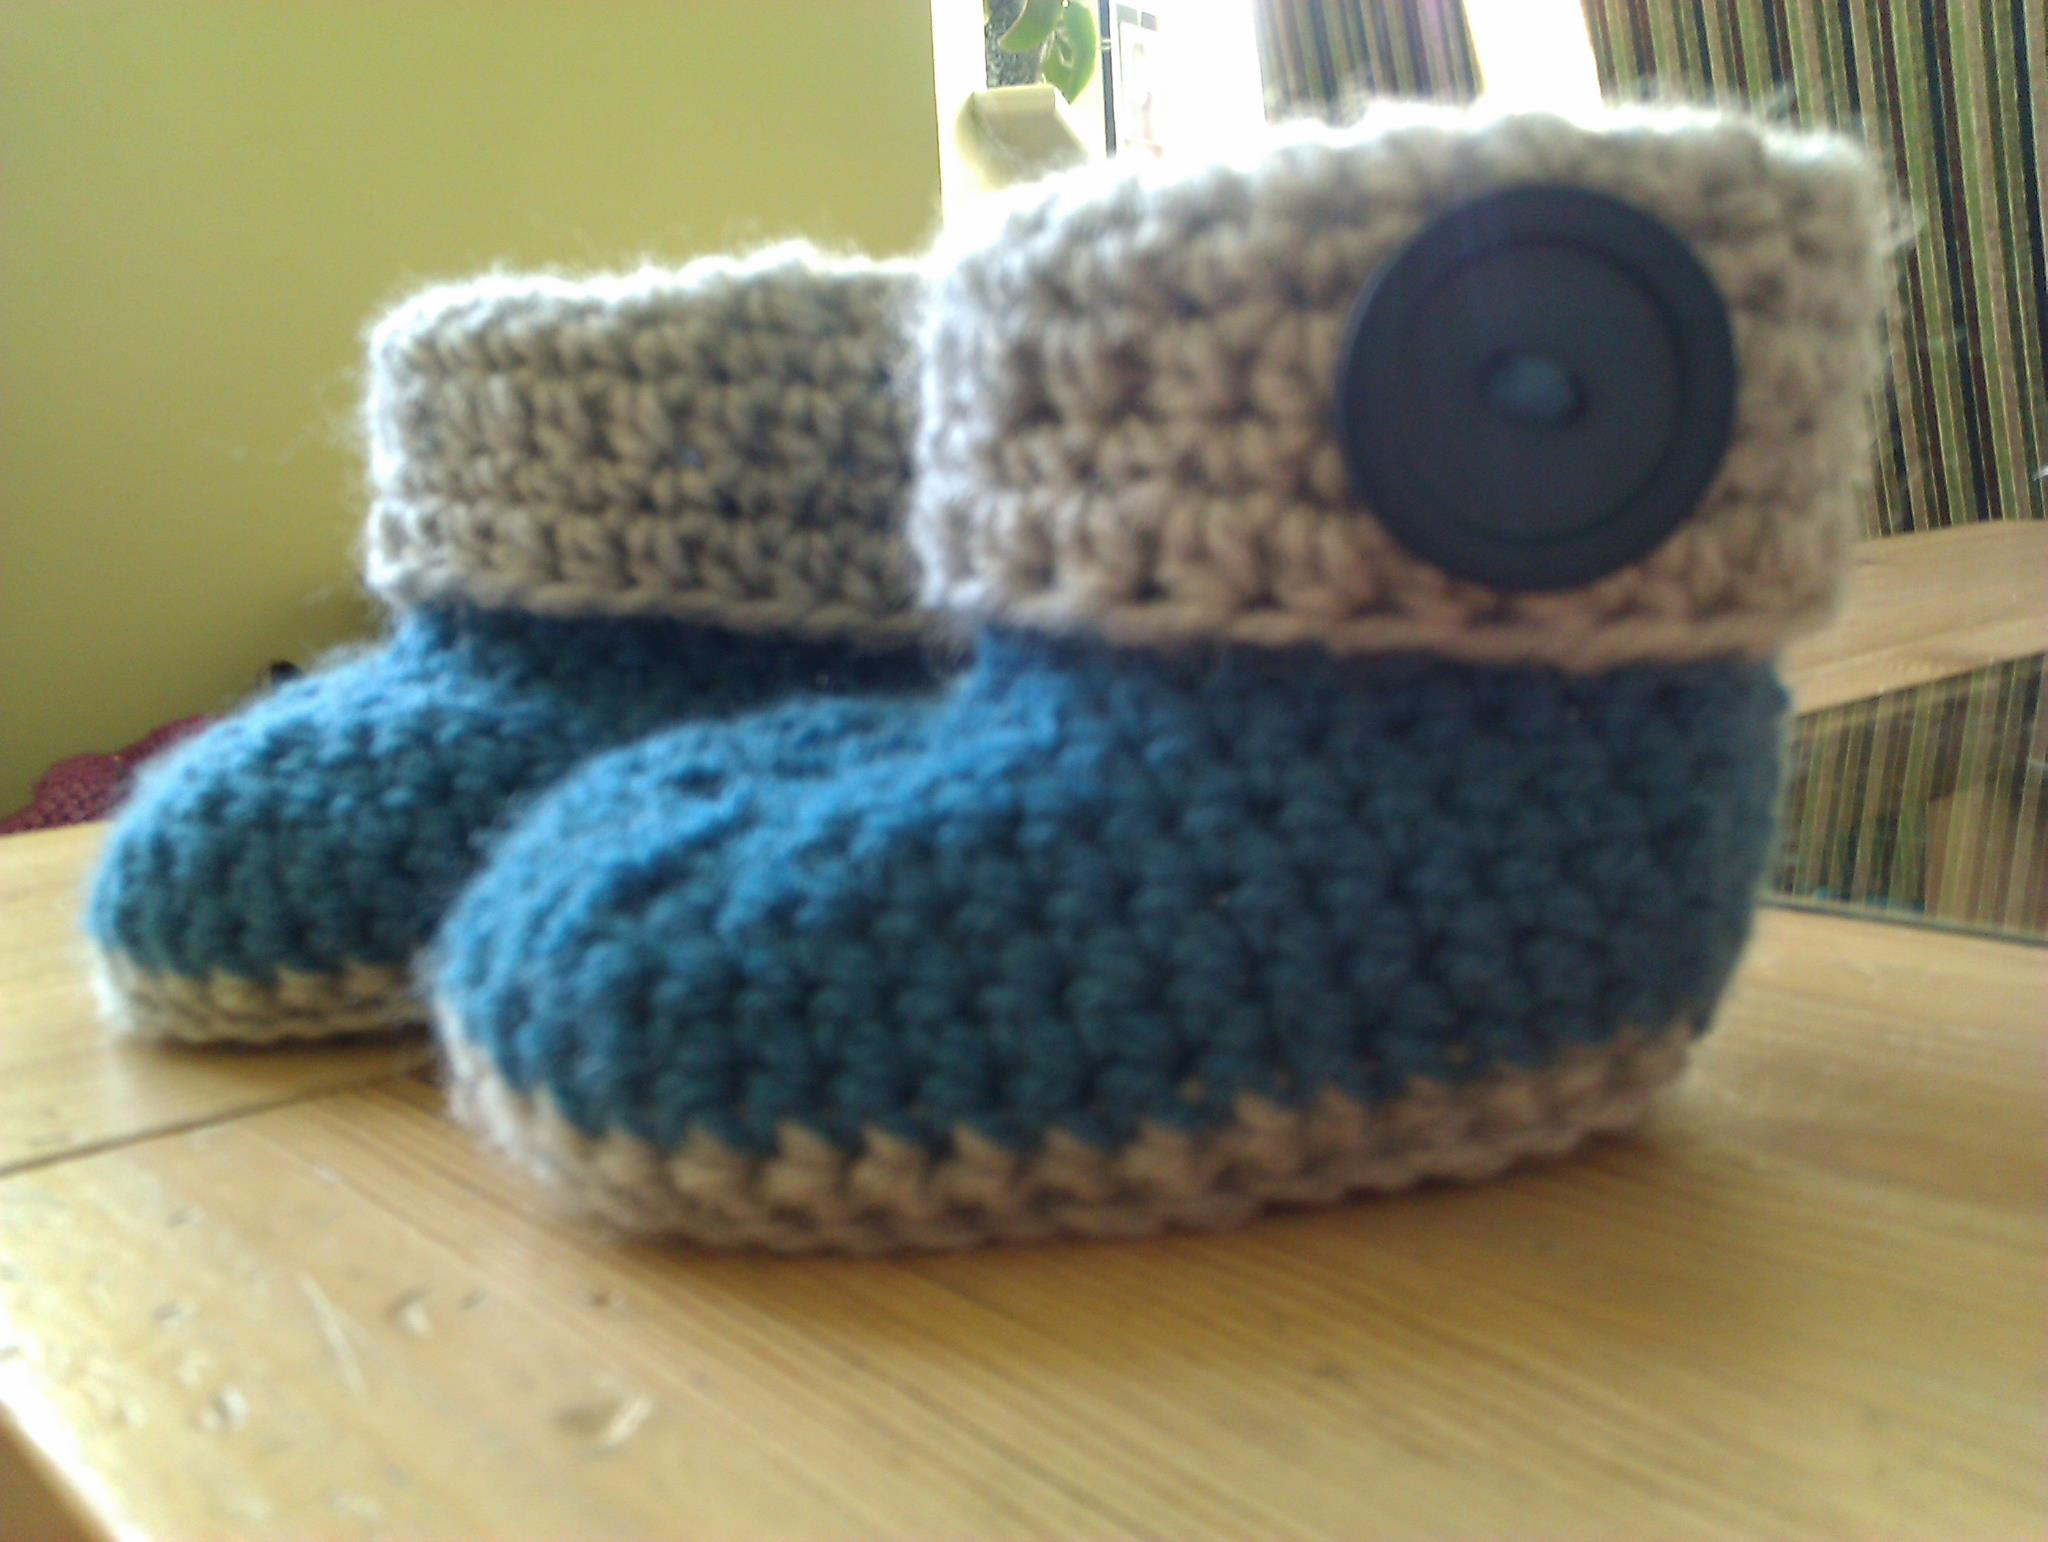 Hand crocheted, blue and grey booties.